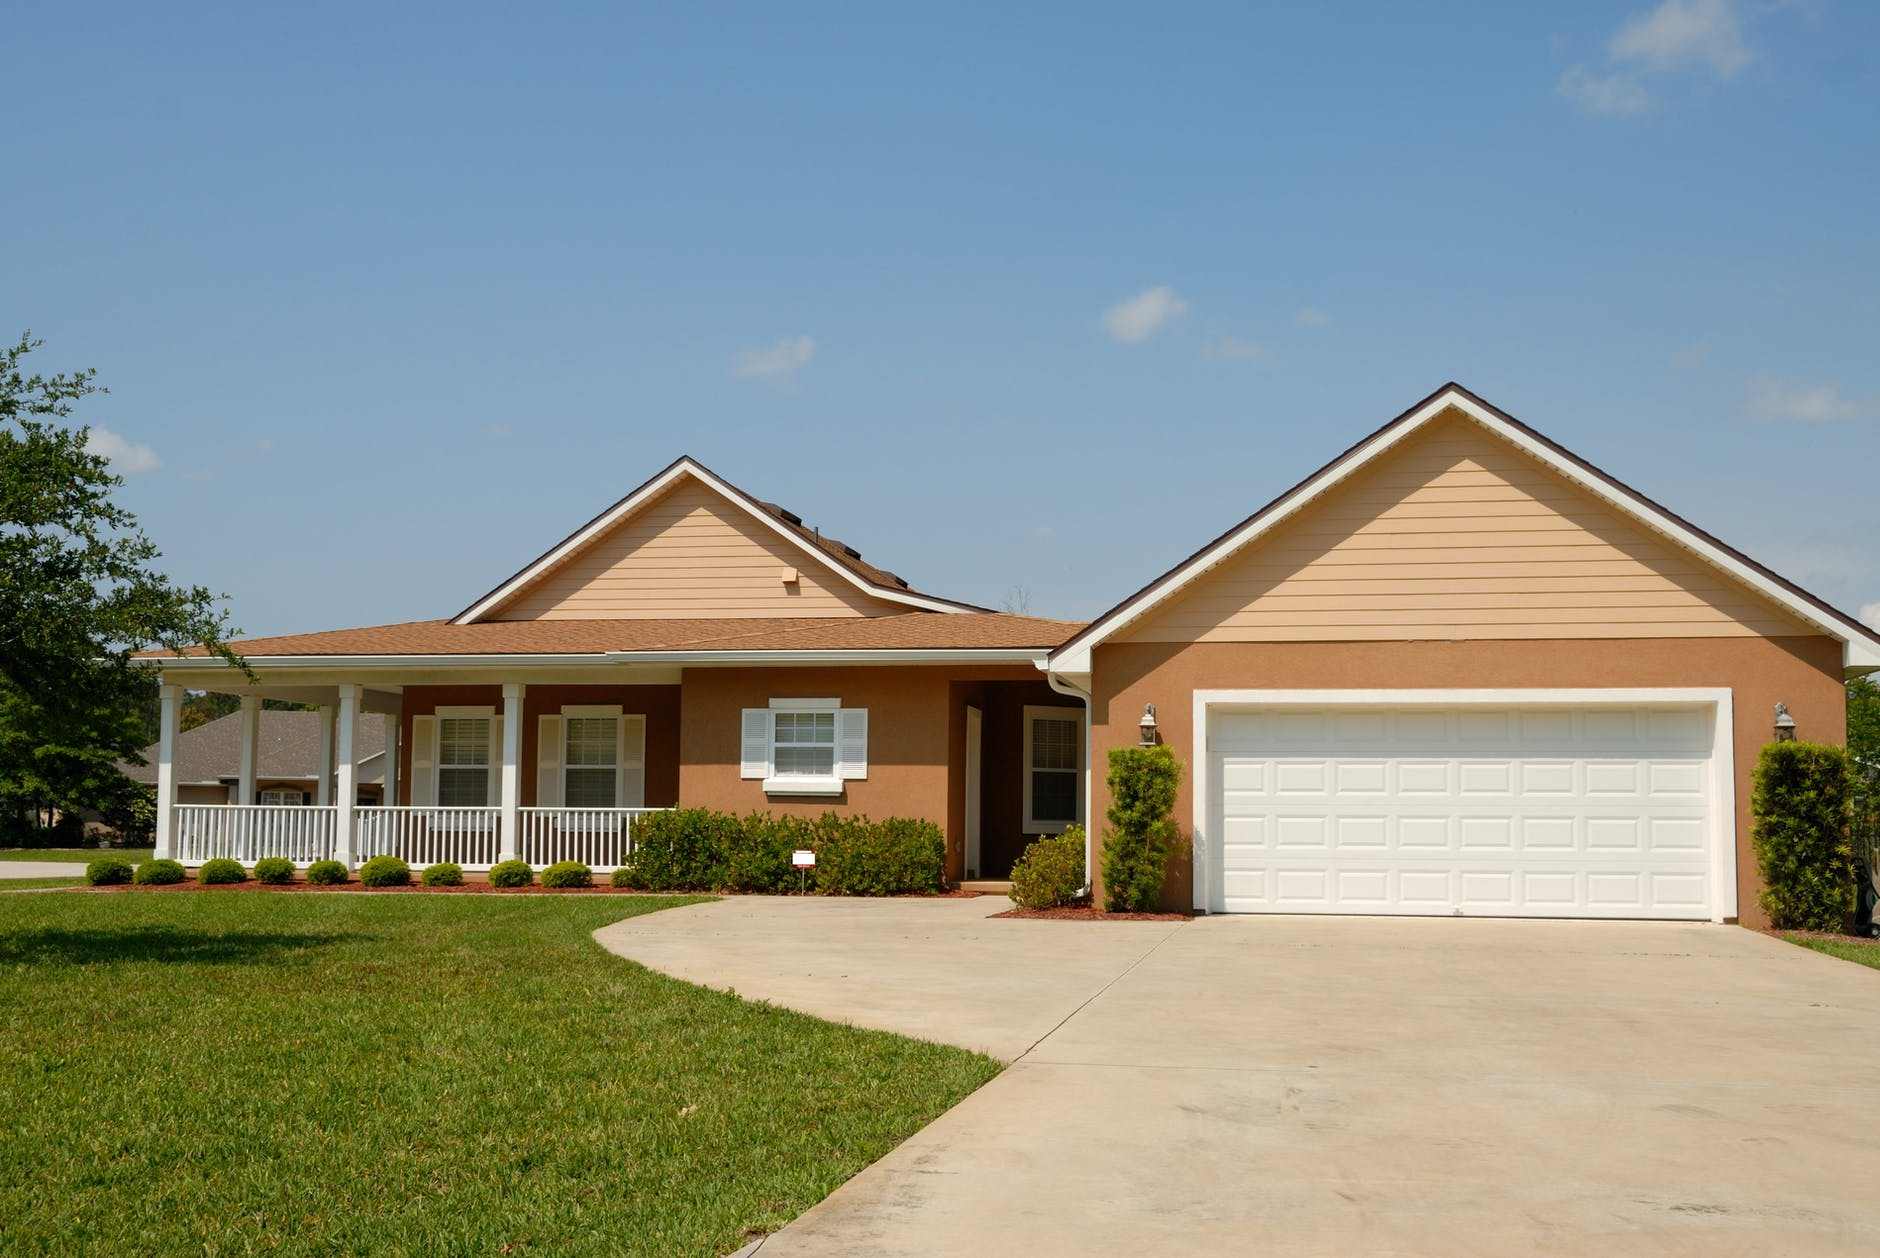 Is Renting a House Really Cheaper than Buying a House?